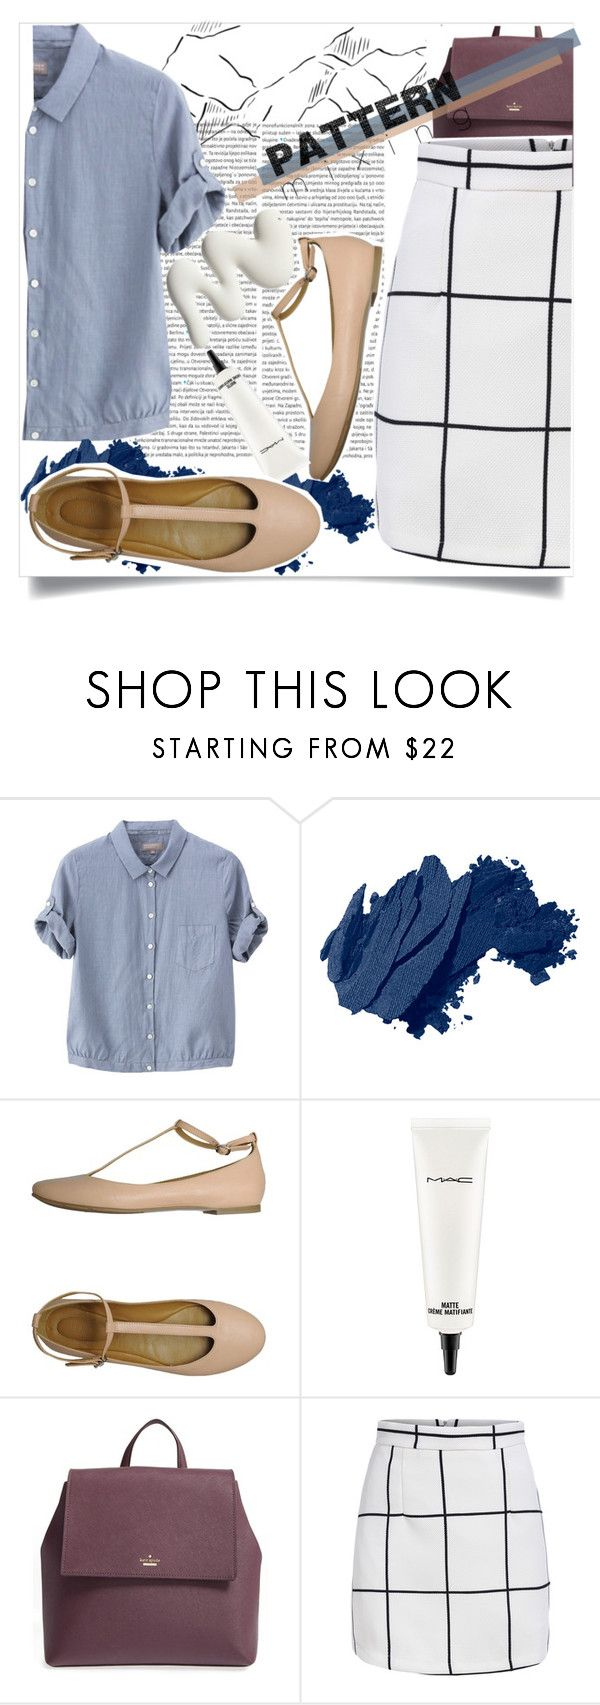 """Pattern Mixing"" by dreyanaxo ❤ liked on Polyvore featuring Oris, Margaret Howell, Bobbi Brown Cosmetics, MAC Cosmetics, Kate Spade, Summer, denim, polyvorecontest and patternmixing"